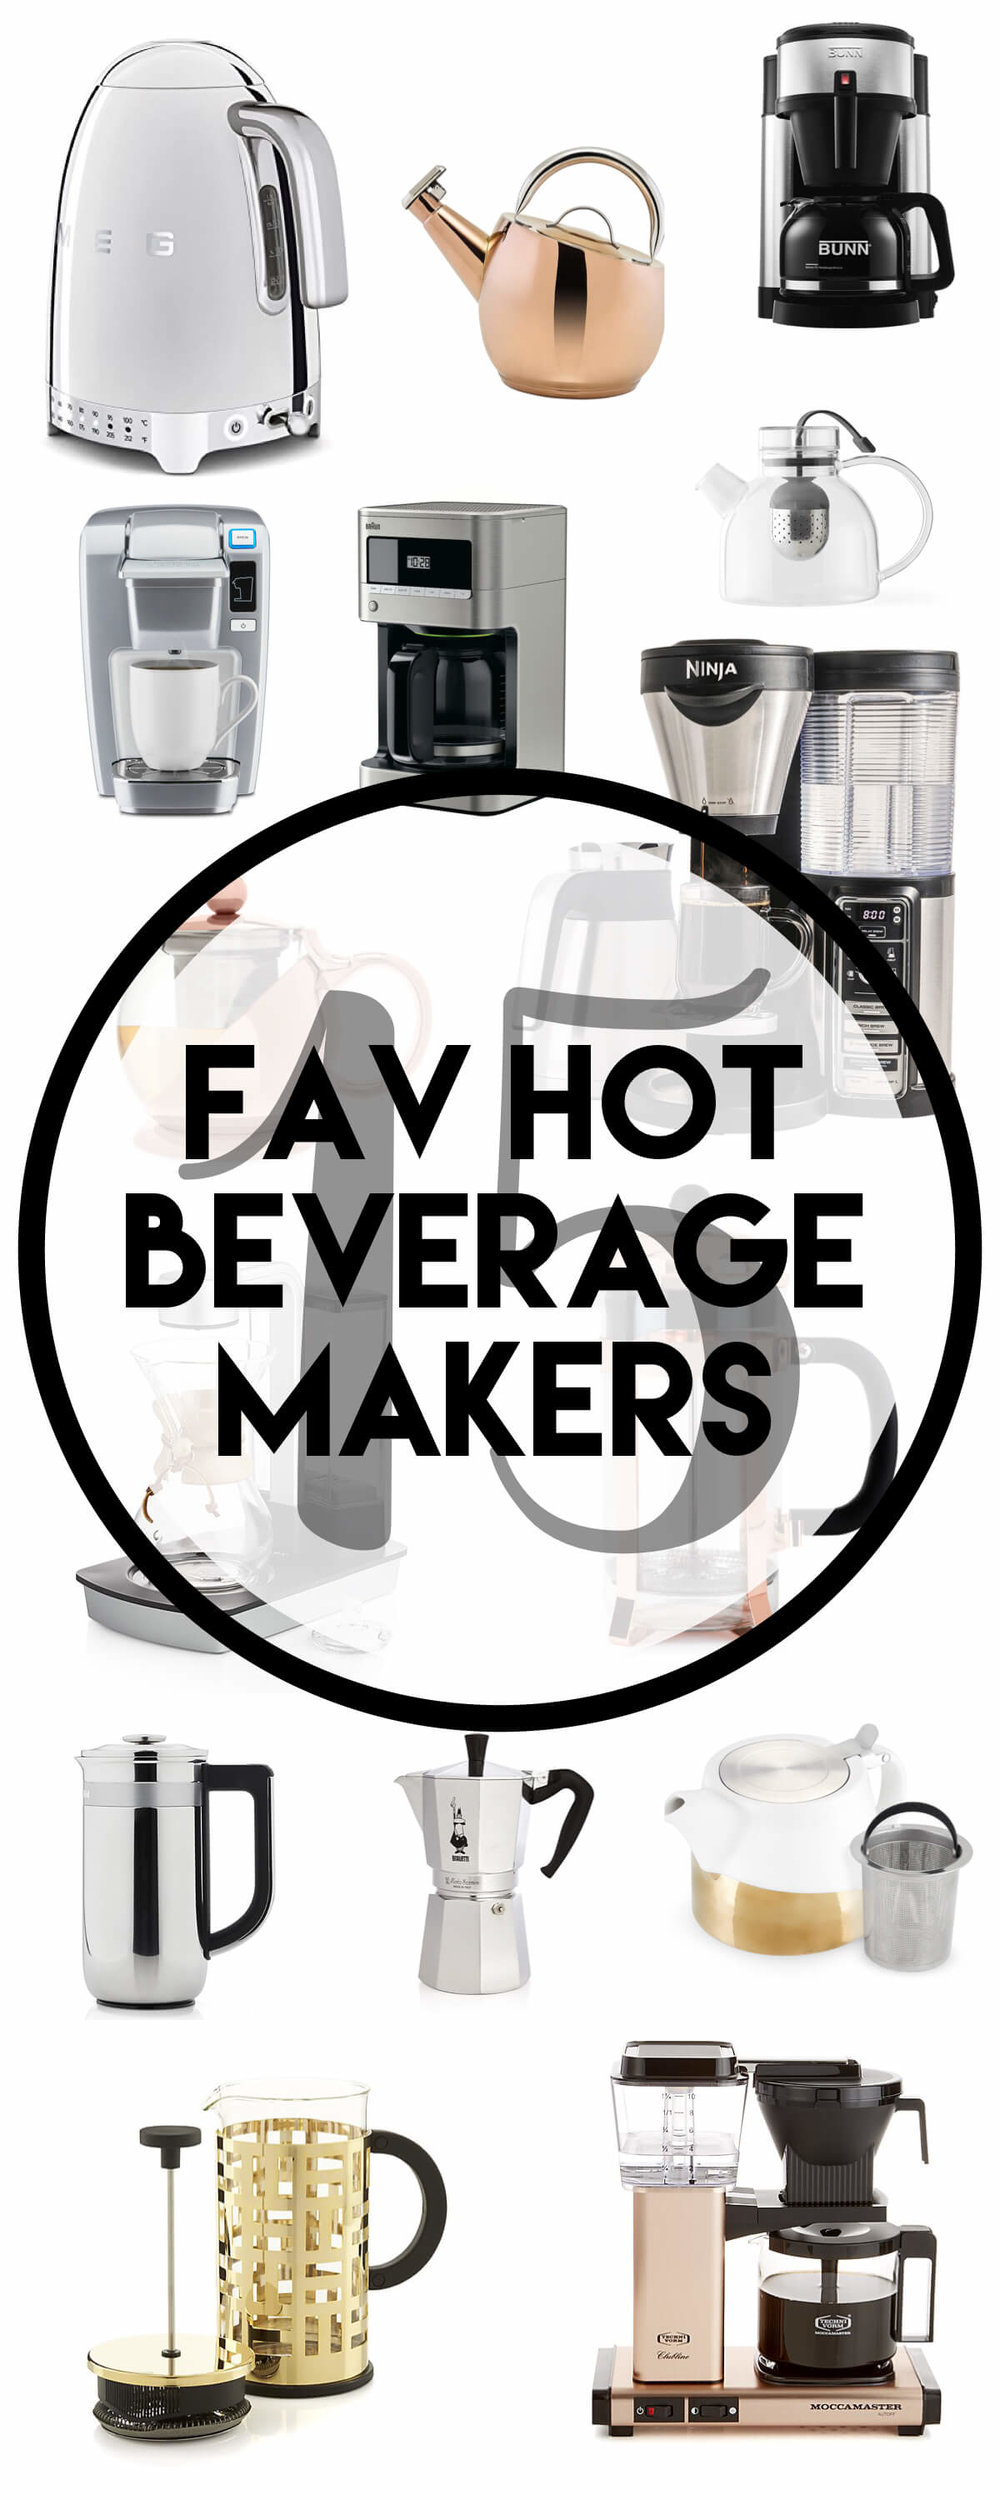 Albie Knows 15 Fav Hot Bev Makers | DIY Coffee Corner.jpeg